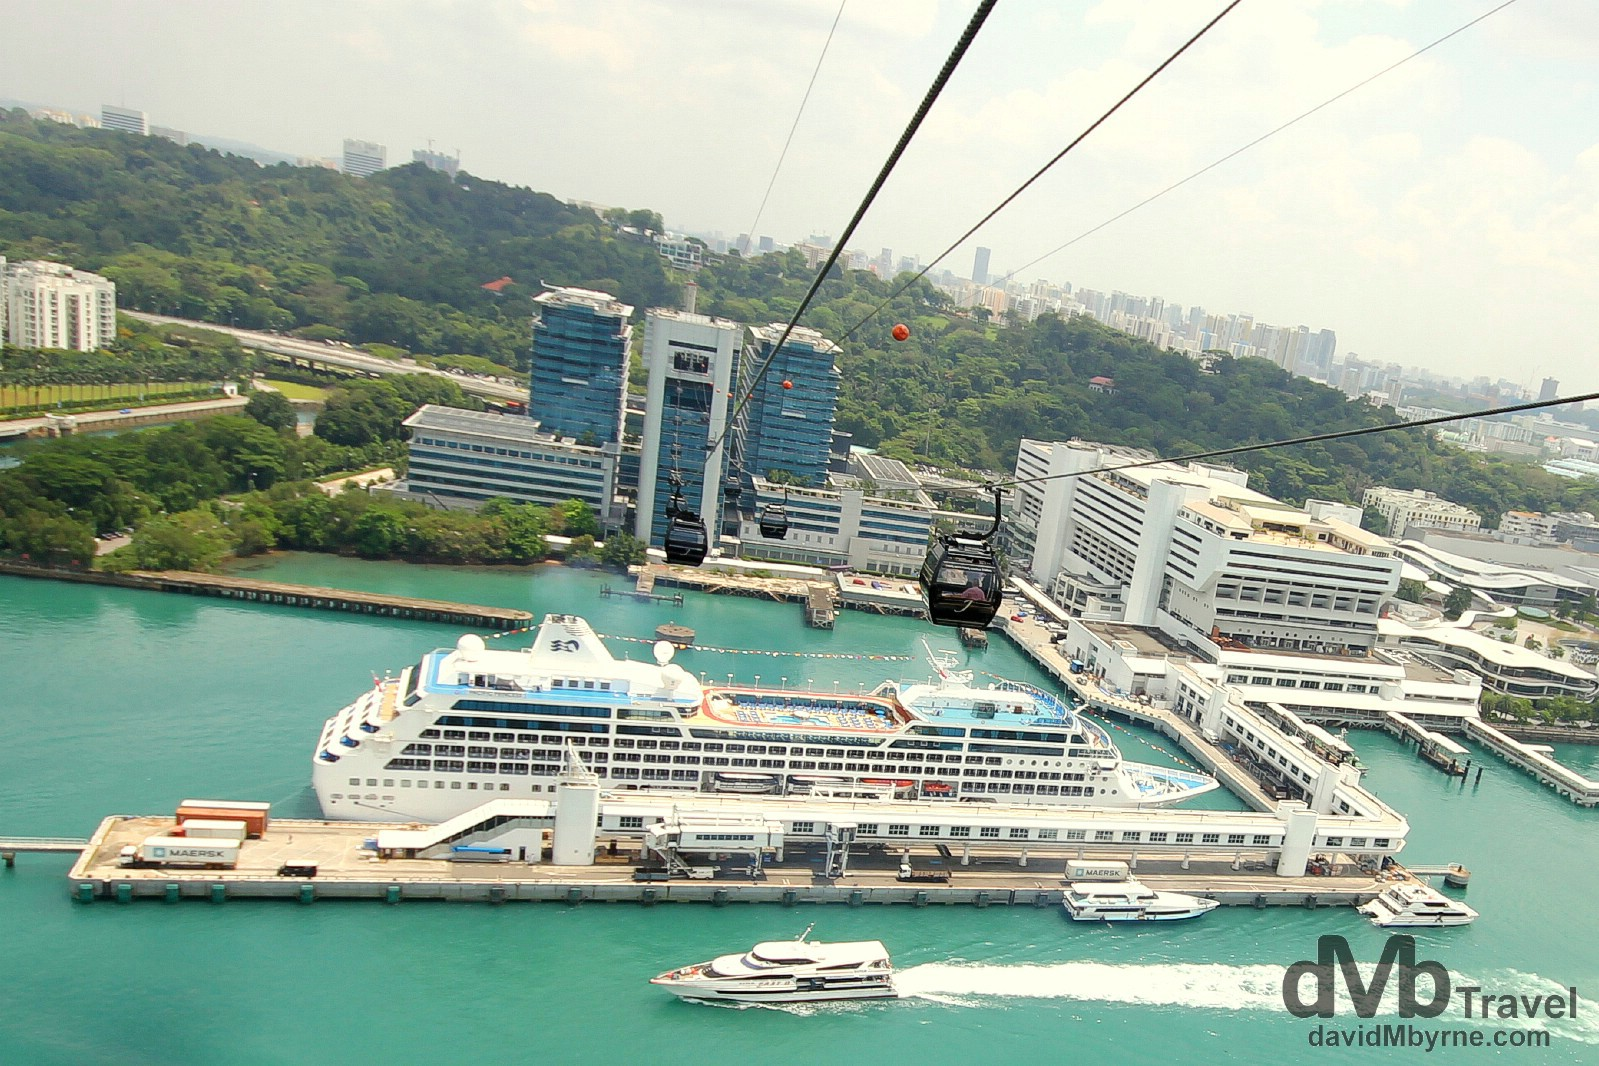 A cruise ship moored in Singapore harbour as seen from the Sentosa Island Cable Car. March 29th 2012.